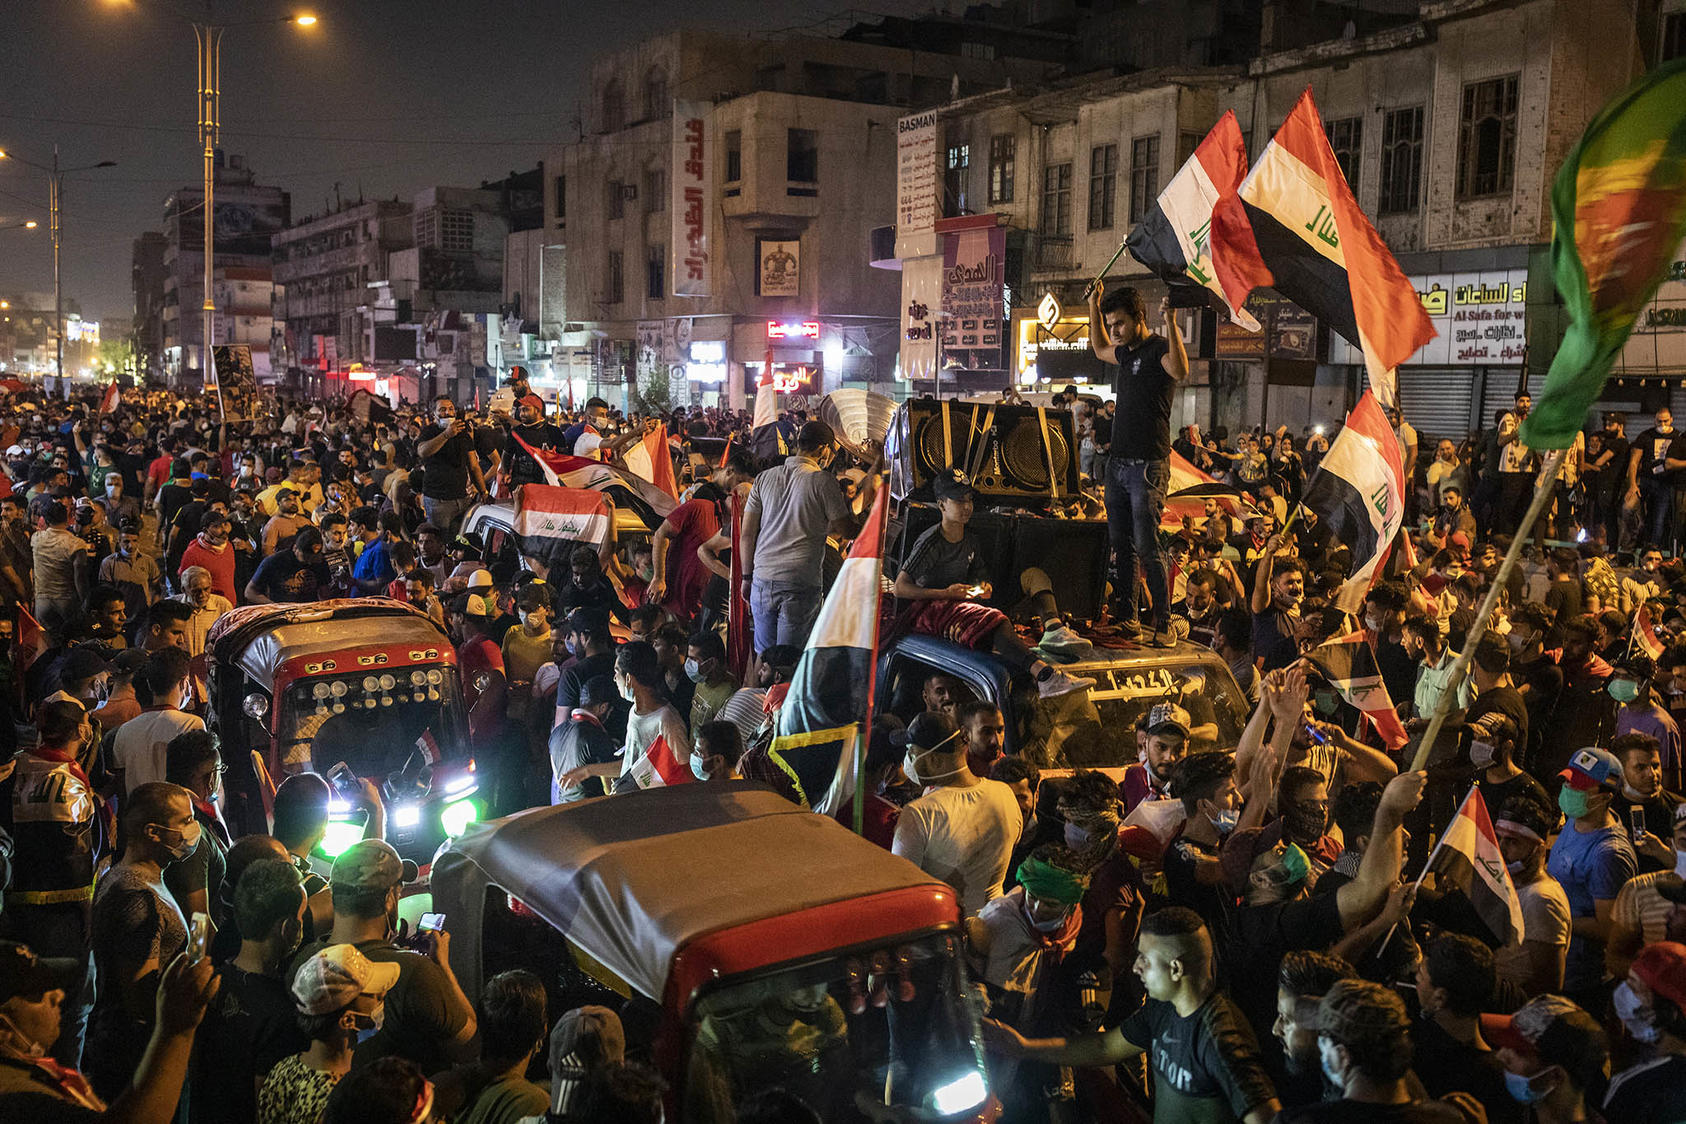 Protesters fill the streets around Tahrir Square in Baghdad on Monday, Oct. 28, 2019. (Ivor Prickett/The New York Times)